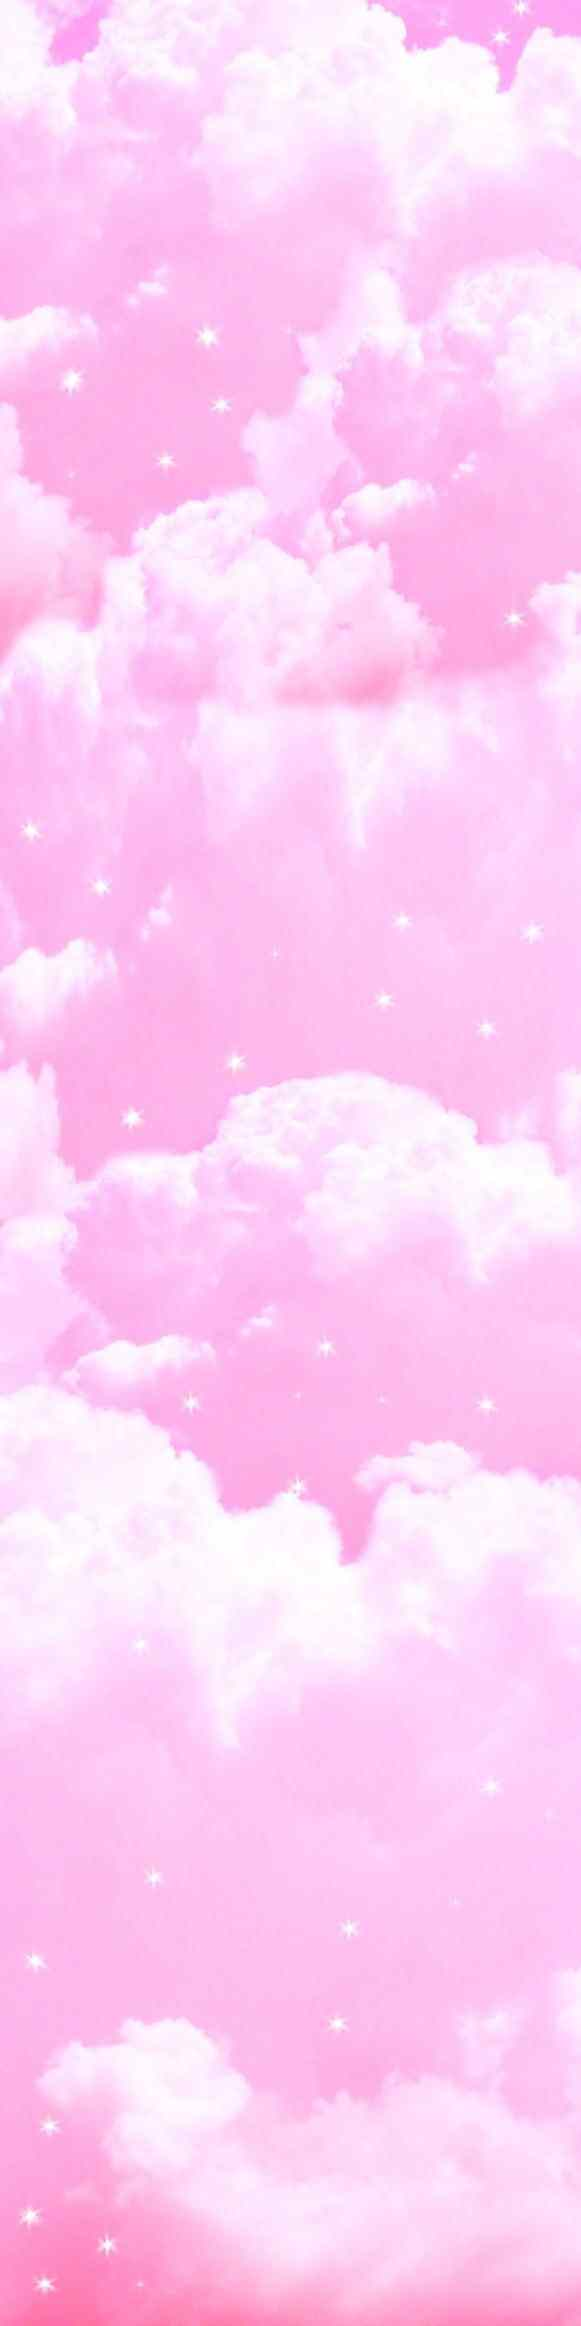 Tumblr Wallpapers Pink Posted By Michelle Mercado